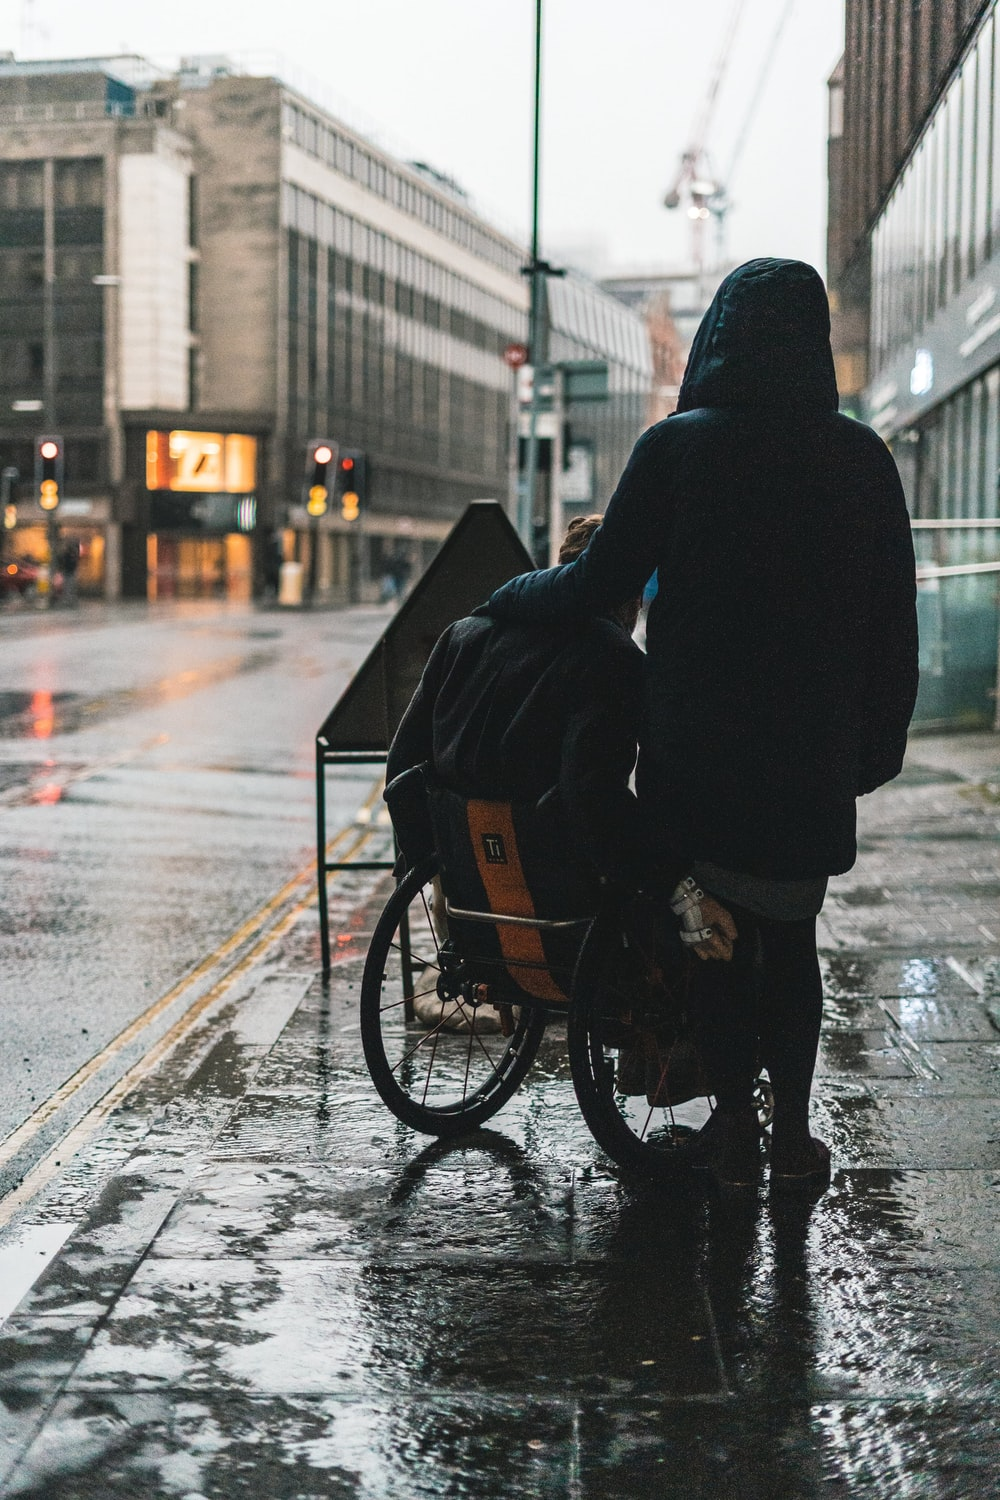 person in black hoodie riding bicycle on road during daytime